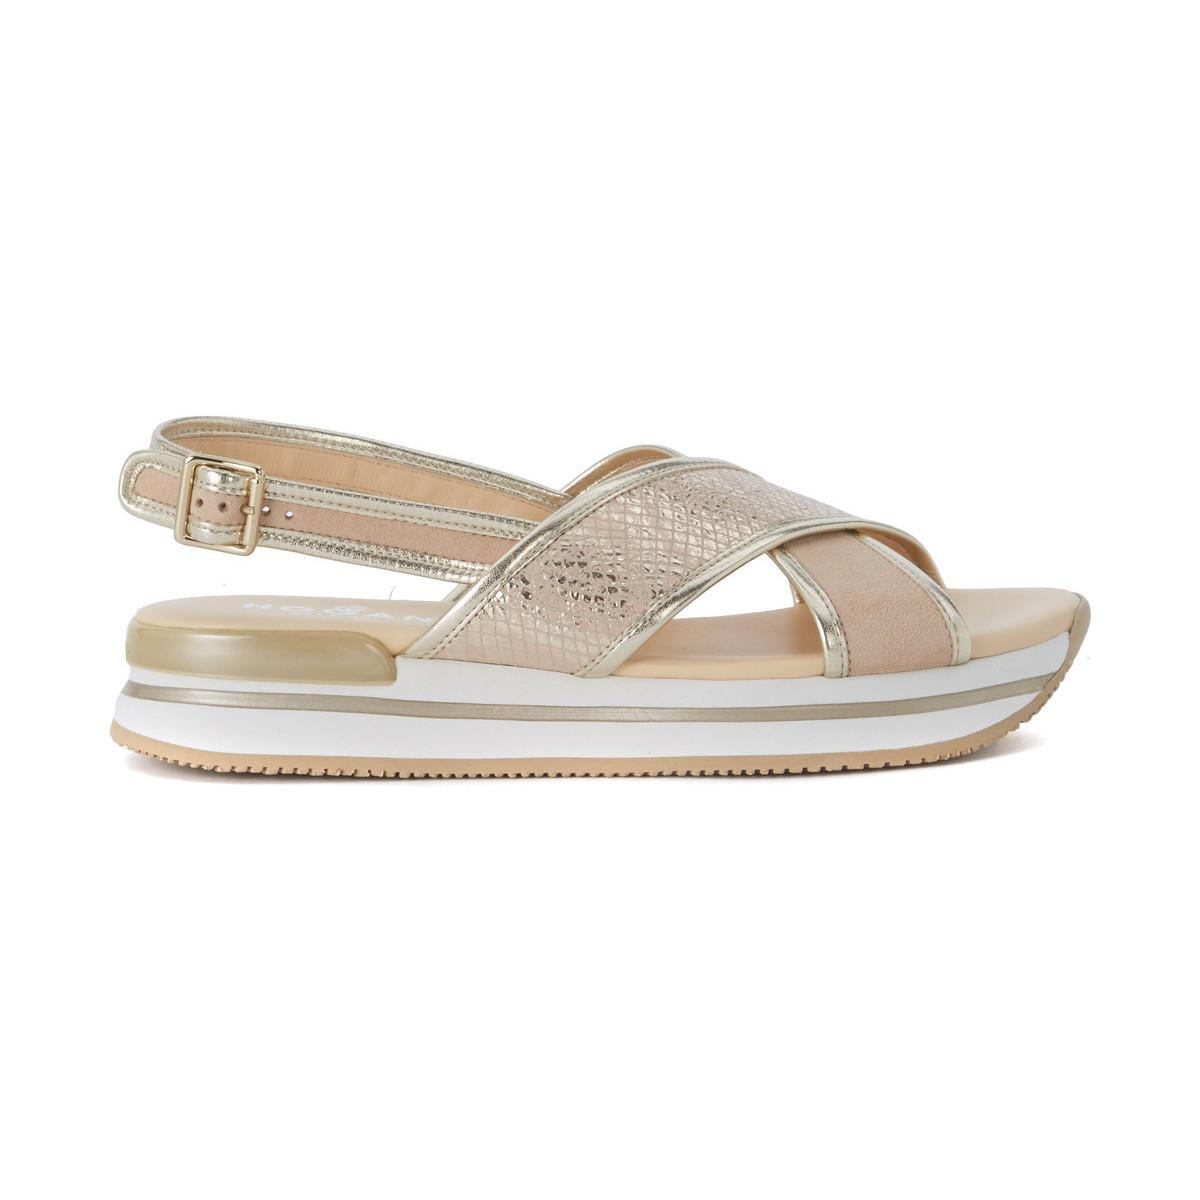 Hogan H257 Blush Pink Suede And Gold Leather Sandal Clearance Shop Offer Shopping Online Visit Cheap Price Buy Cheap Brand New Unisex Cheap Sale Many Kinds Of 01EYlJrxnx